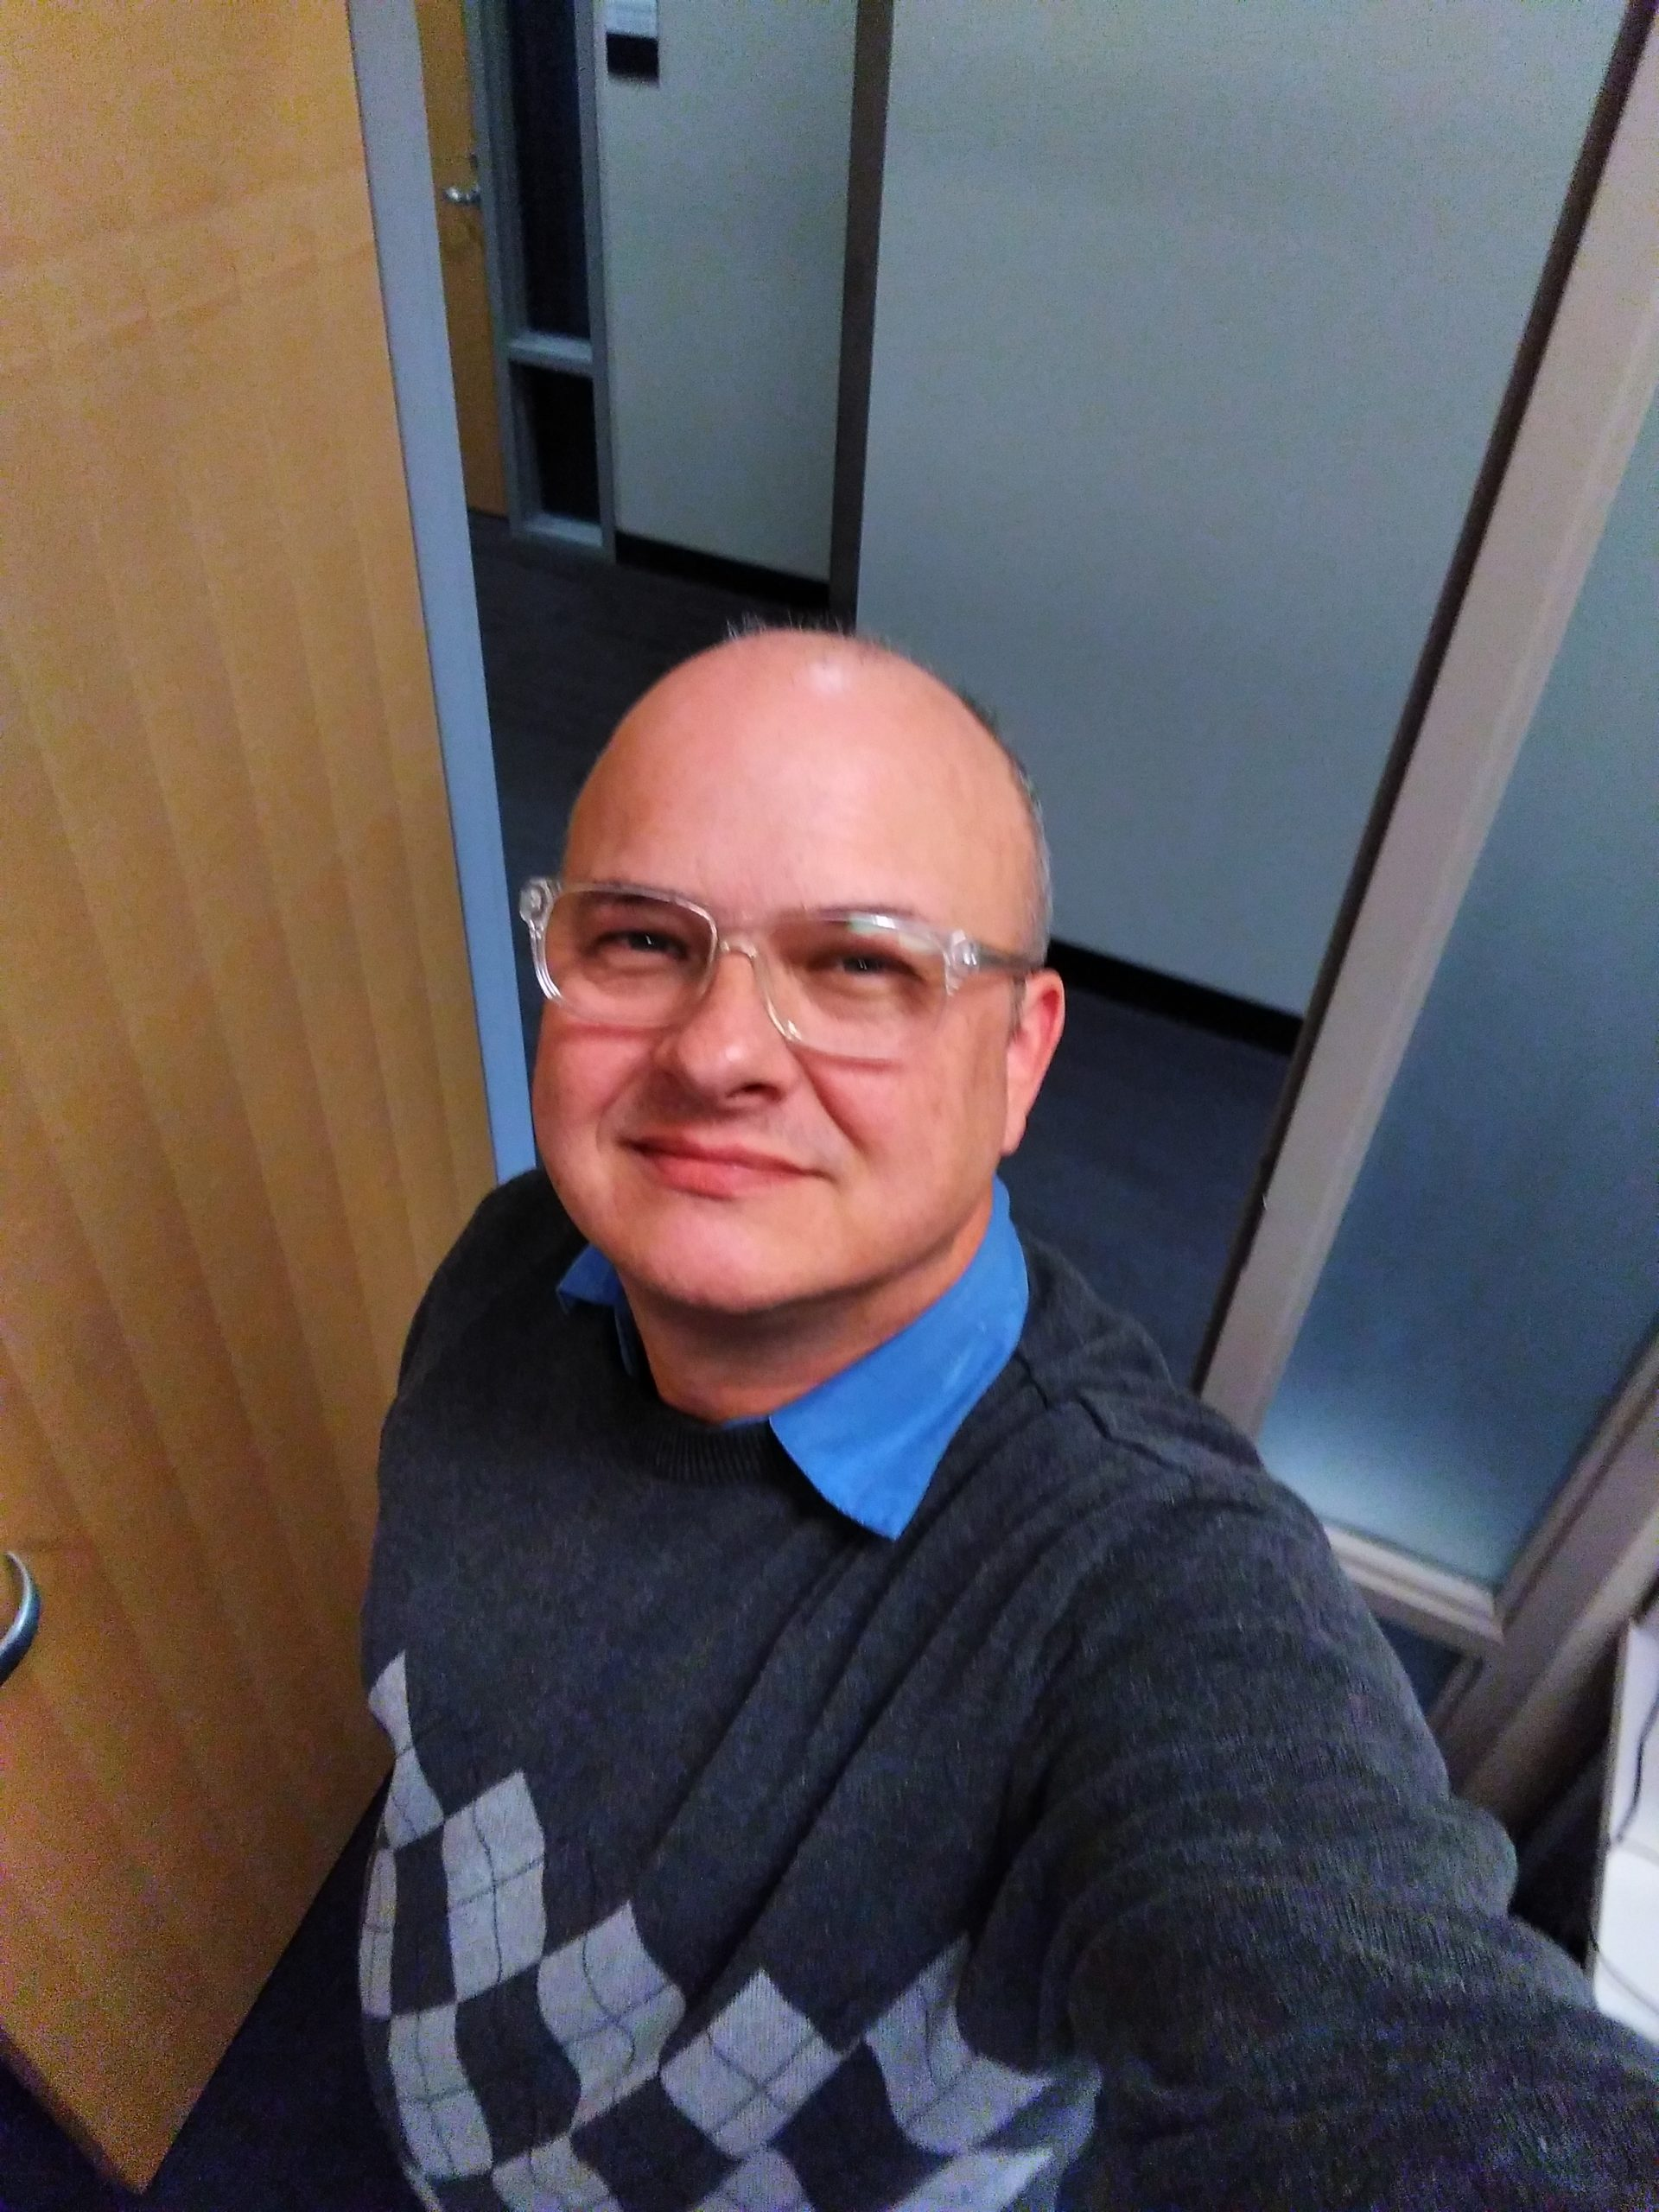 In the photo, I'm wearing a grey Argyle sweater over a blue-collared shirt My face is clean shave and adorned with clear-framed eyeglasses. Behind me is an open door and wall on the other side of the hallway. a wall .